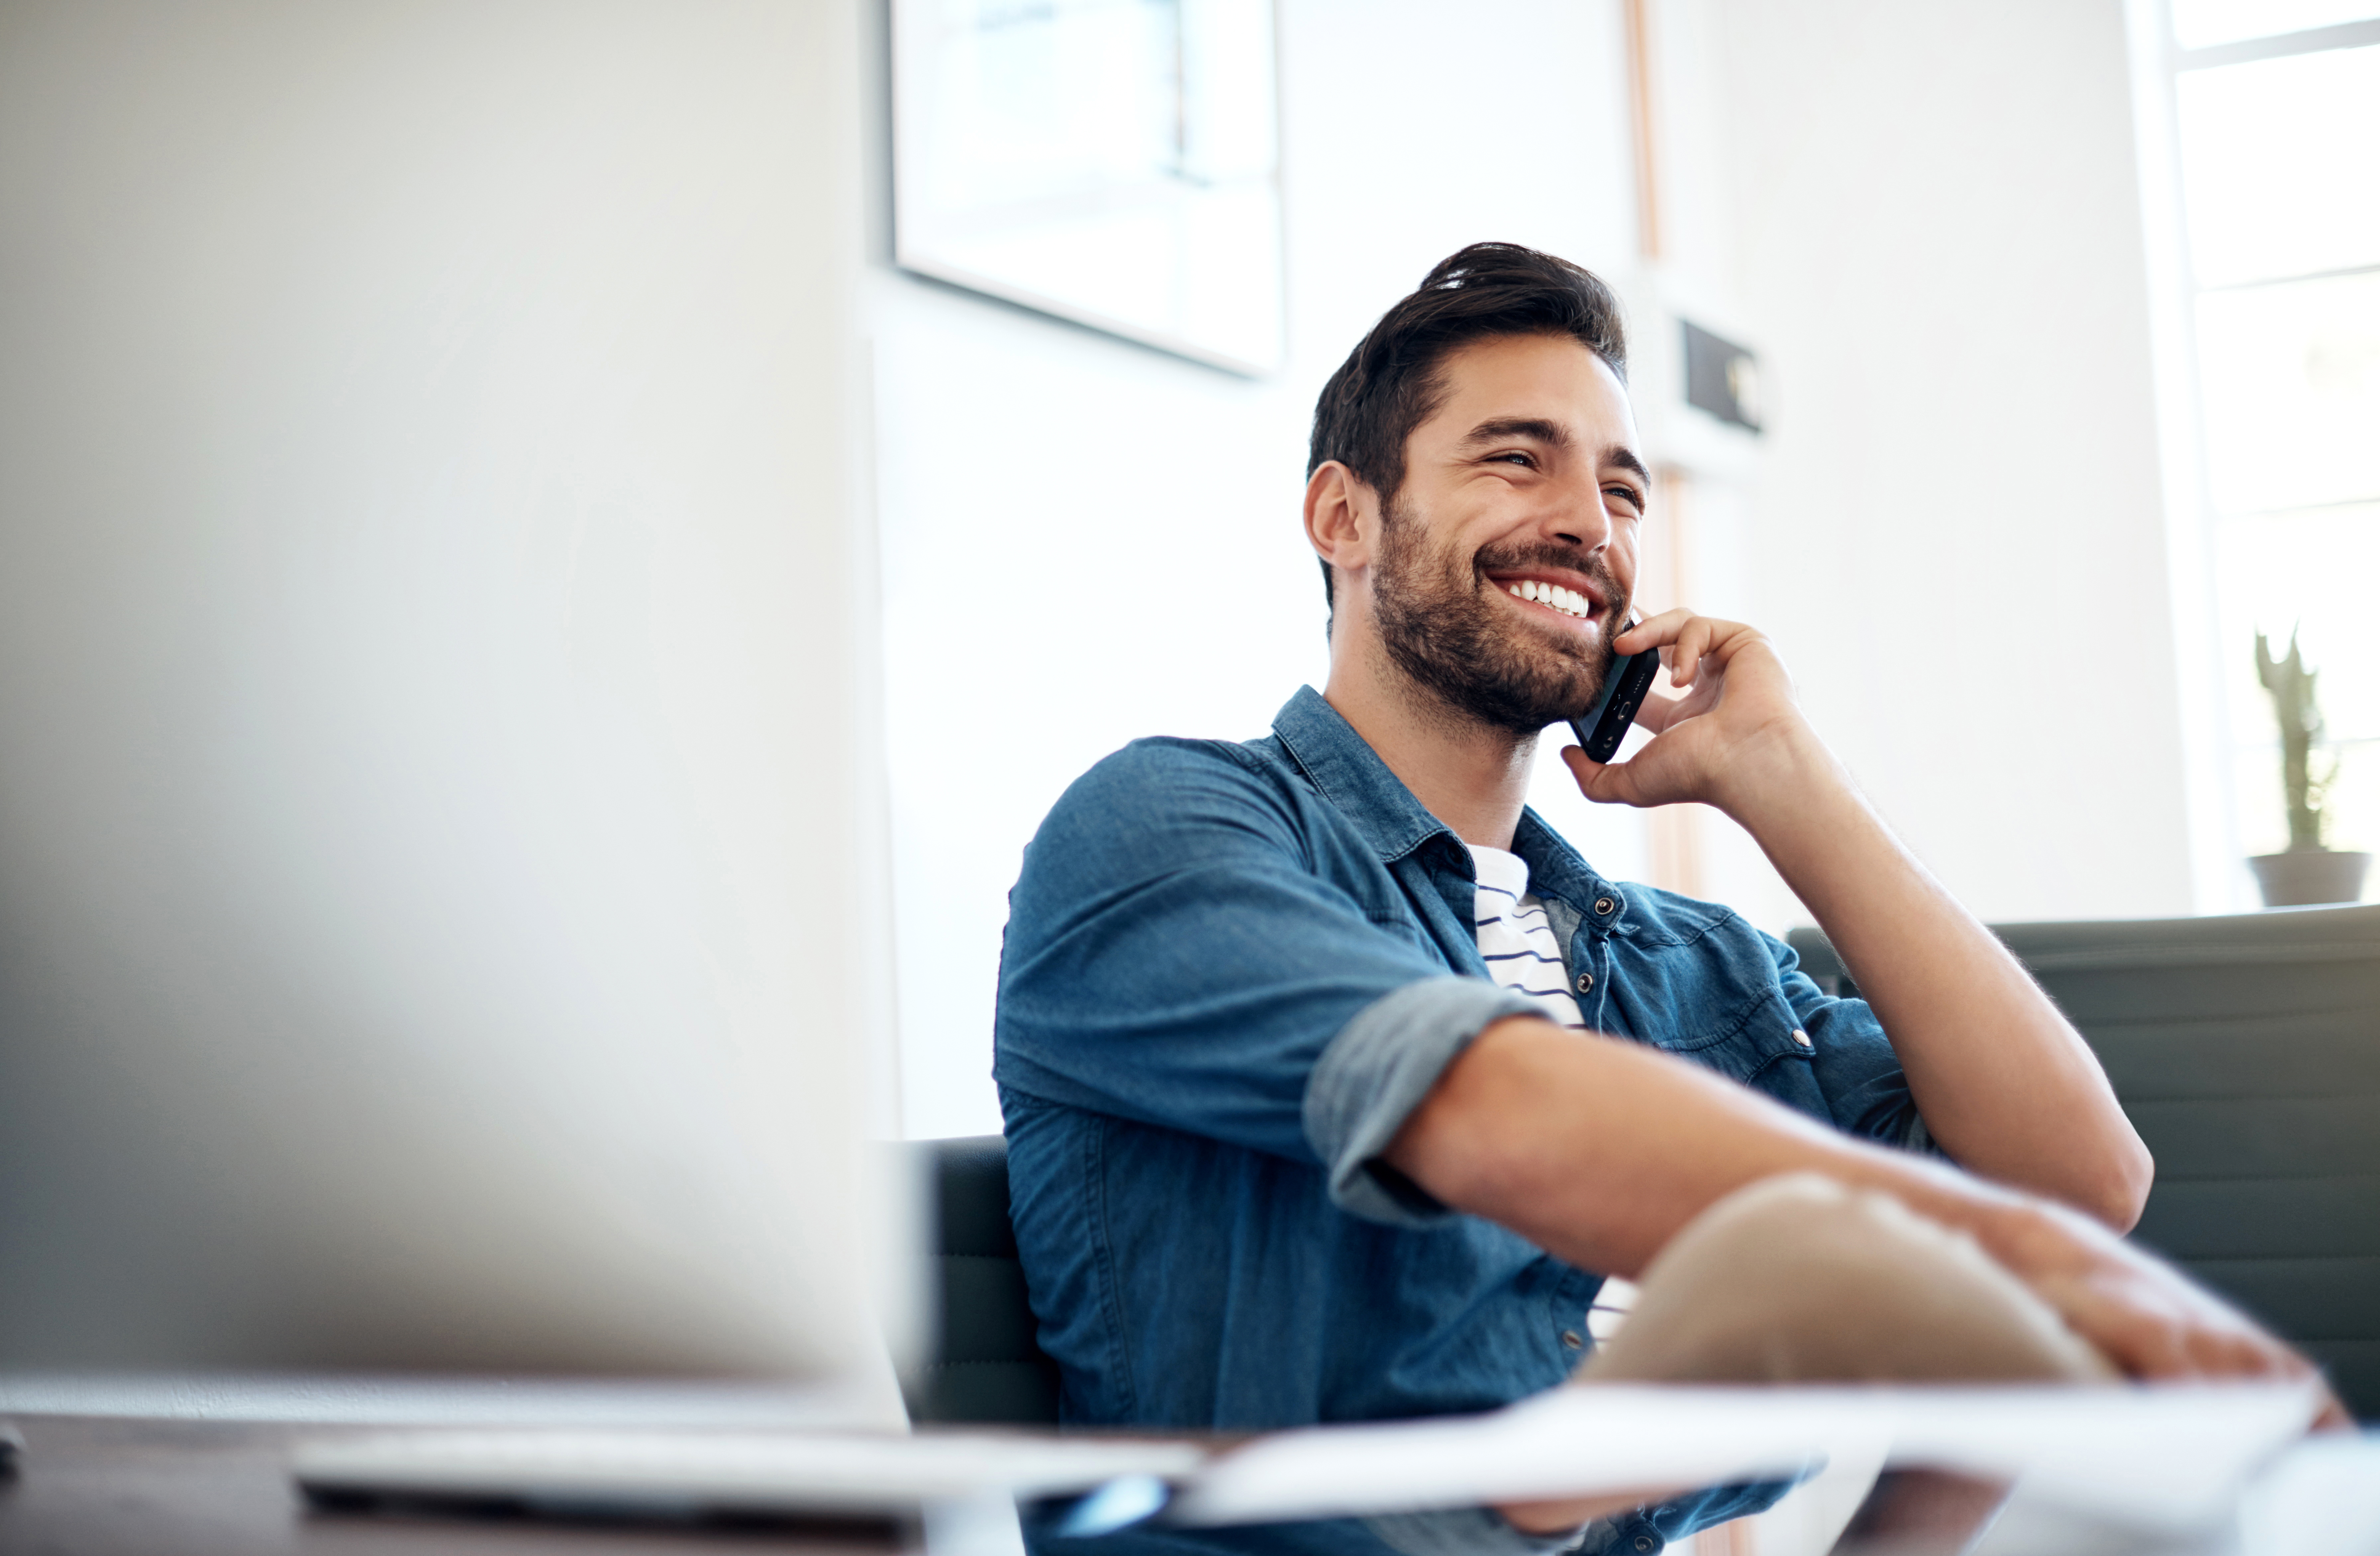 Man sitting and smiling while talking on his phone